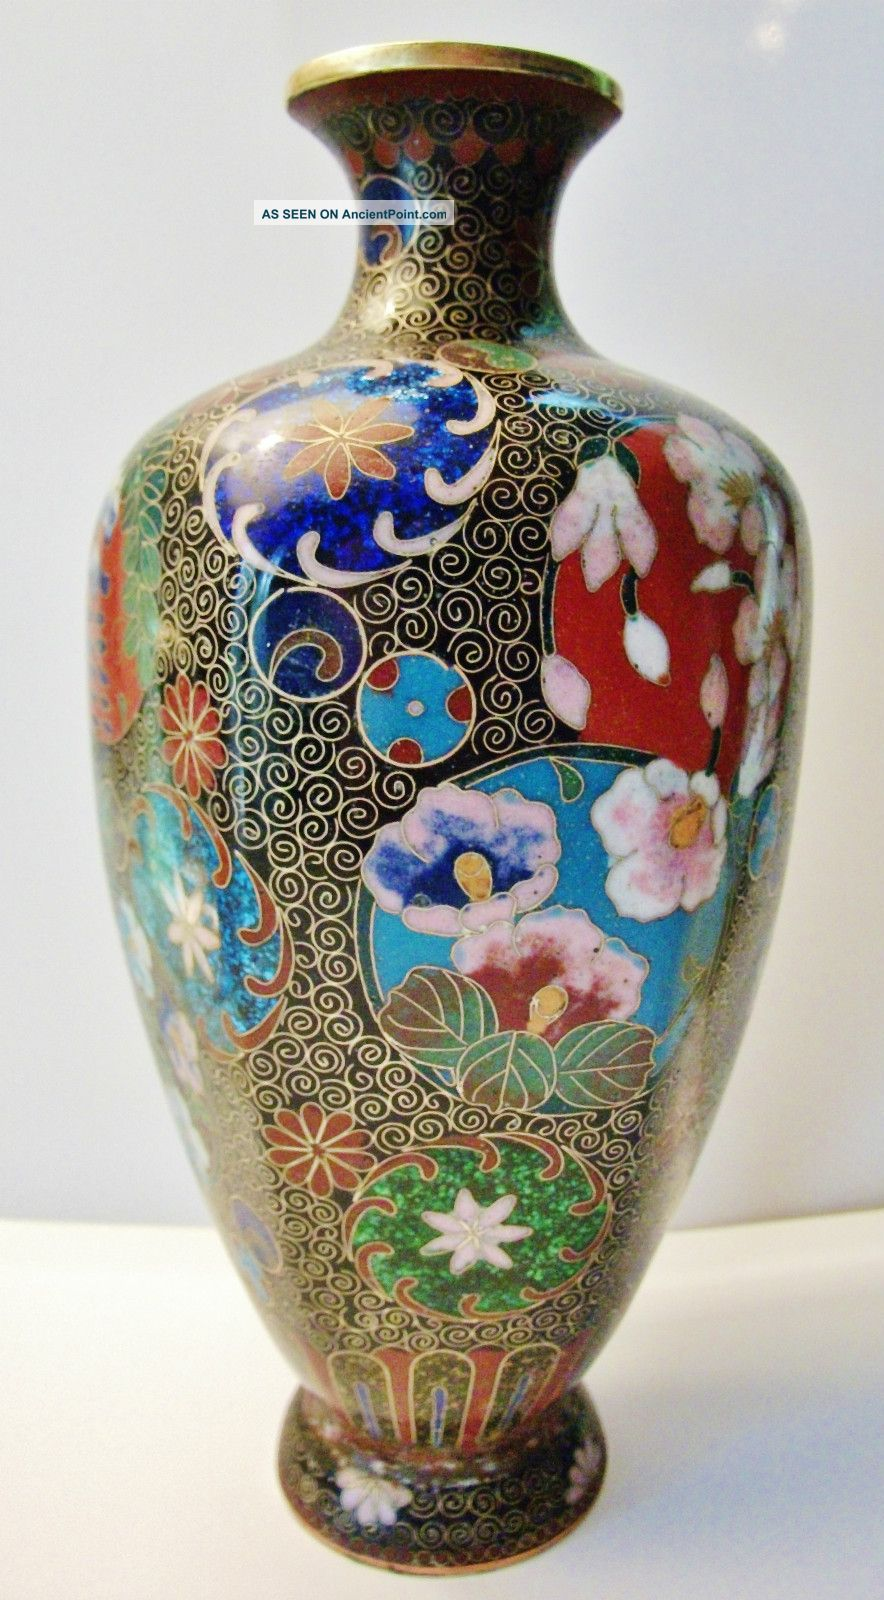 Chinese Antique Cloisonne Vase - Excellent Craftsmanship - Great Quality Boxes photo